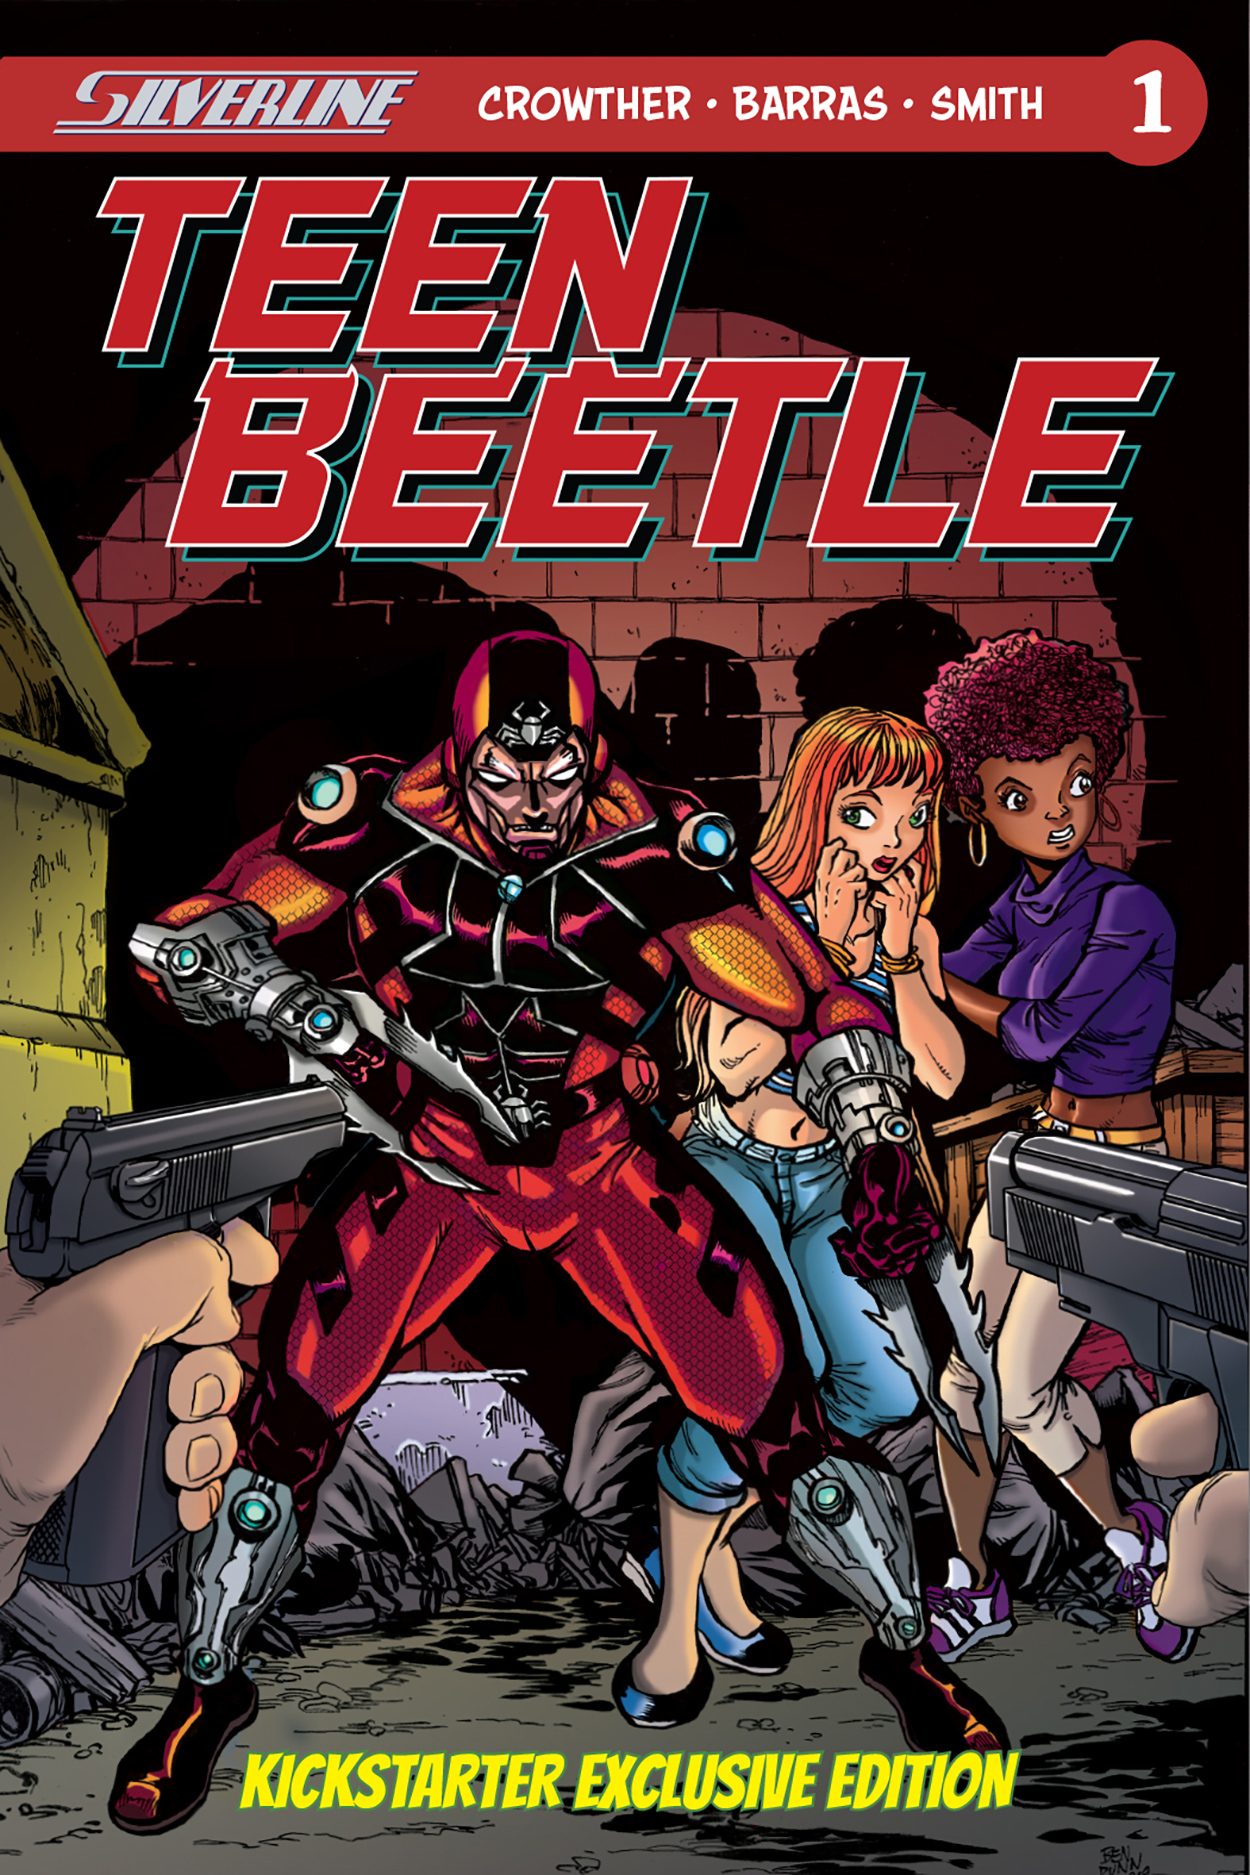 Silverline Double Feature: Teen Beetle #1 and Switchblade #1